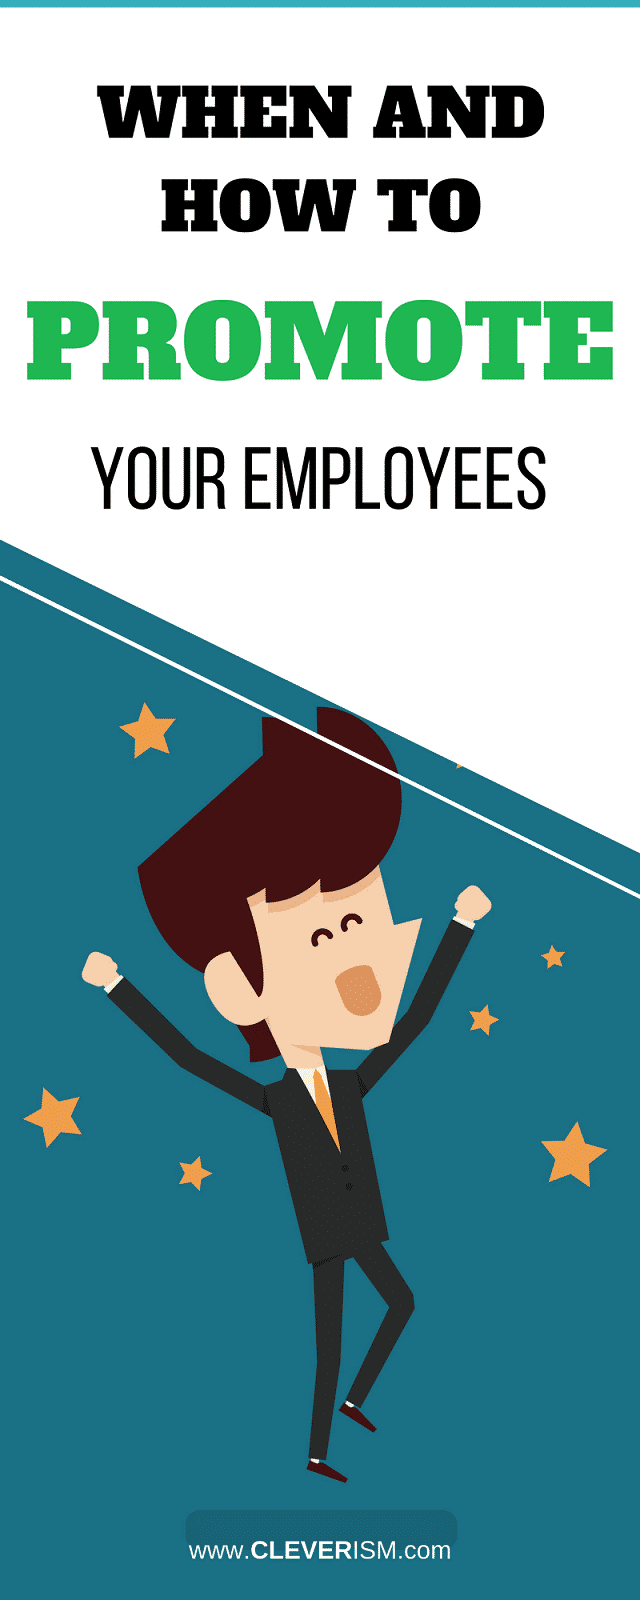 When And How To Promote Your Employees